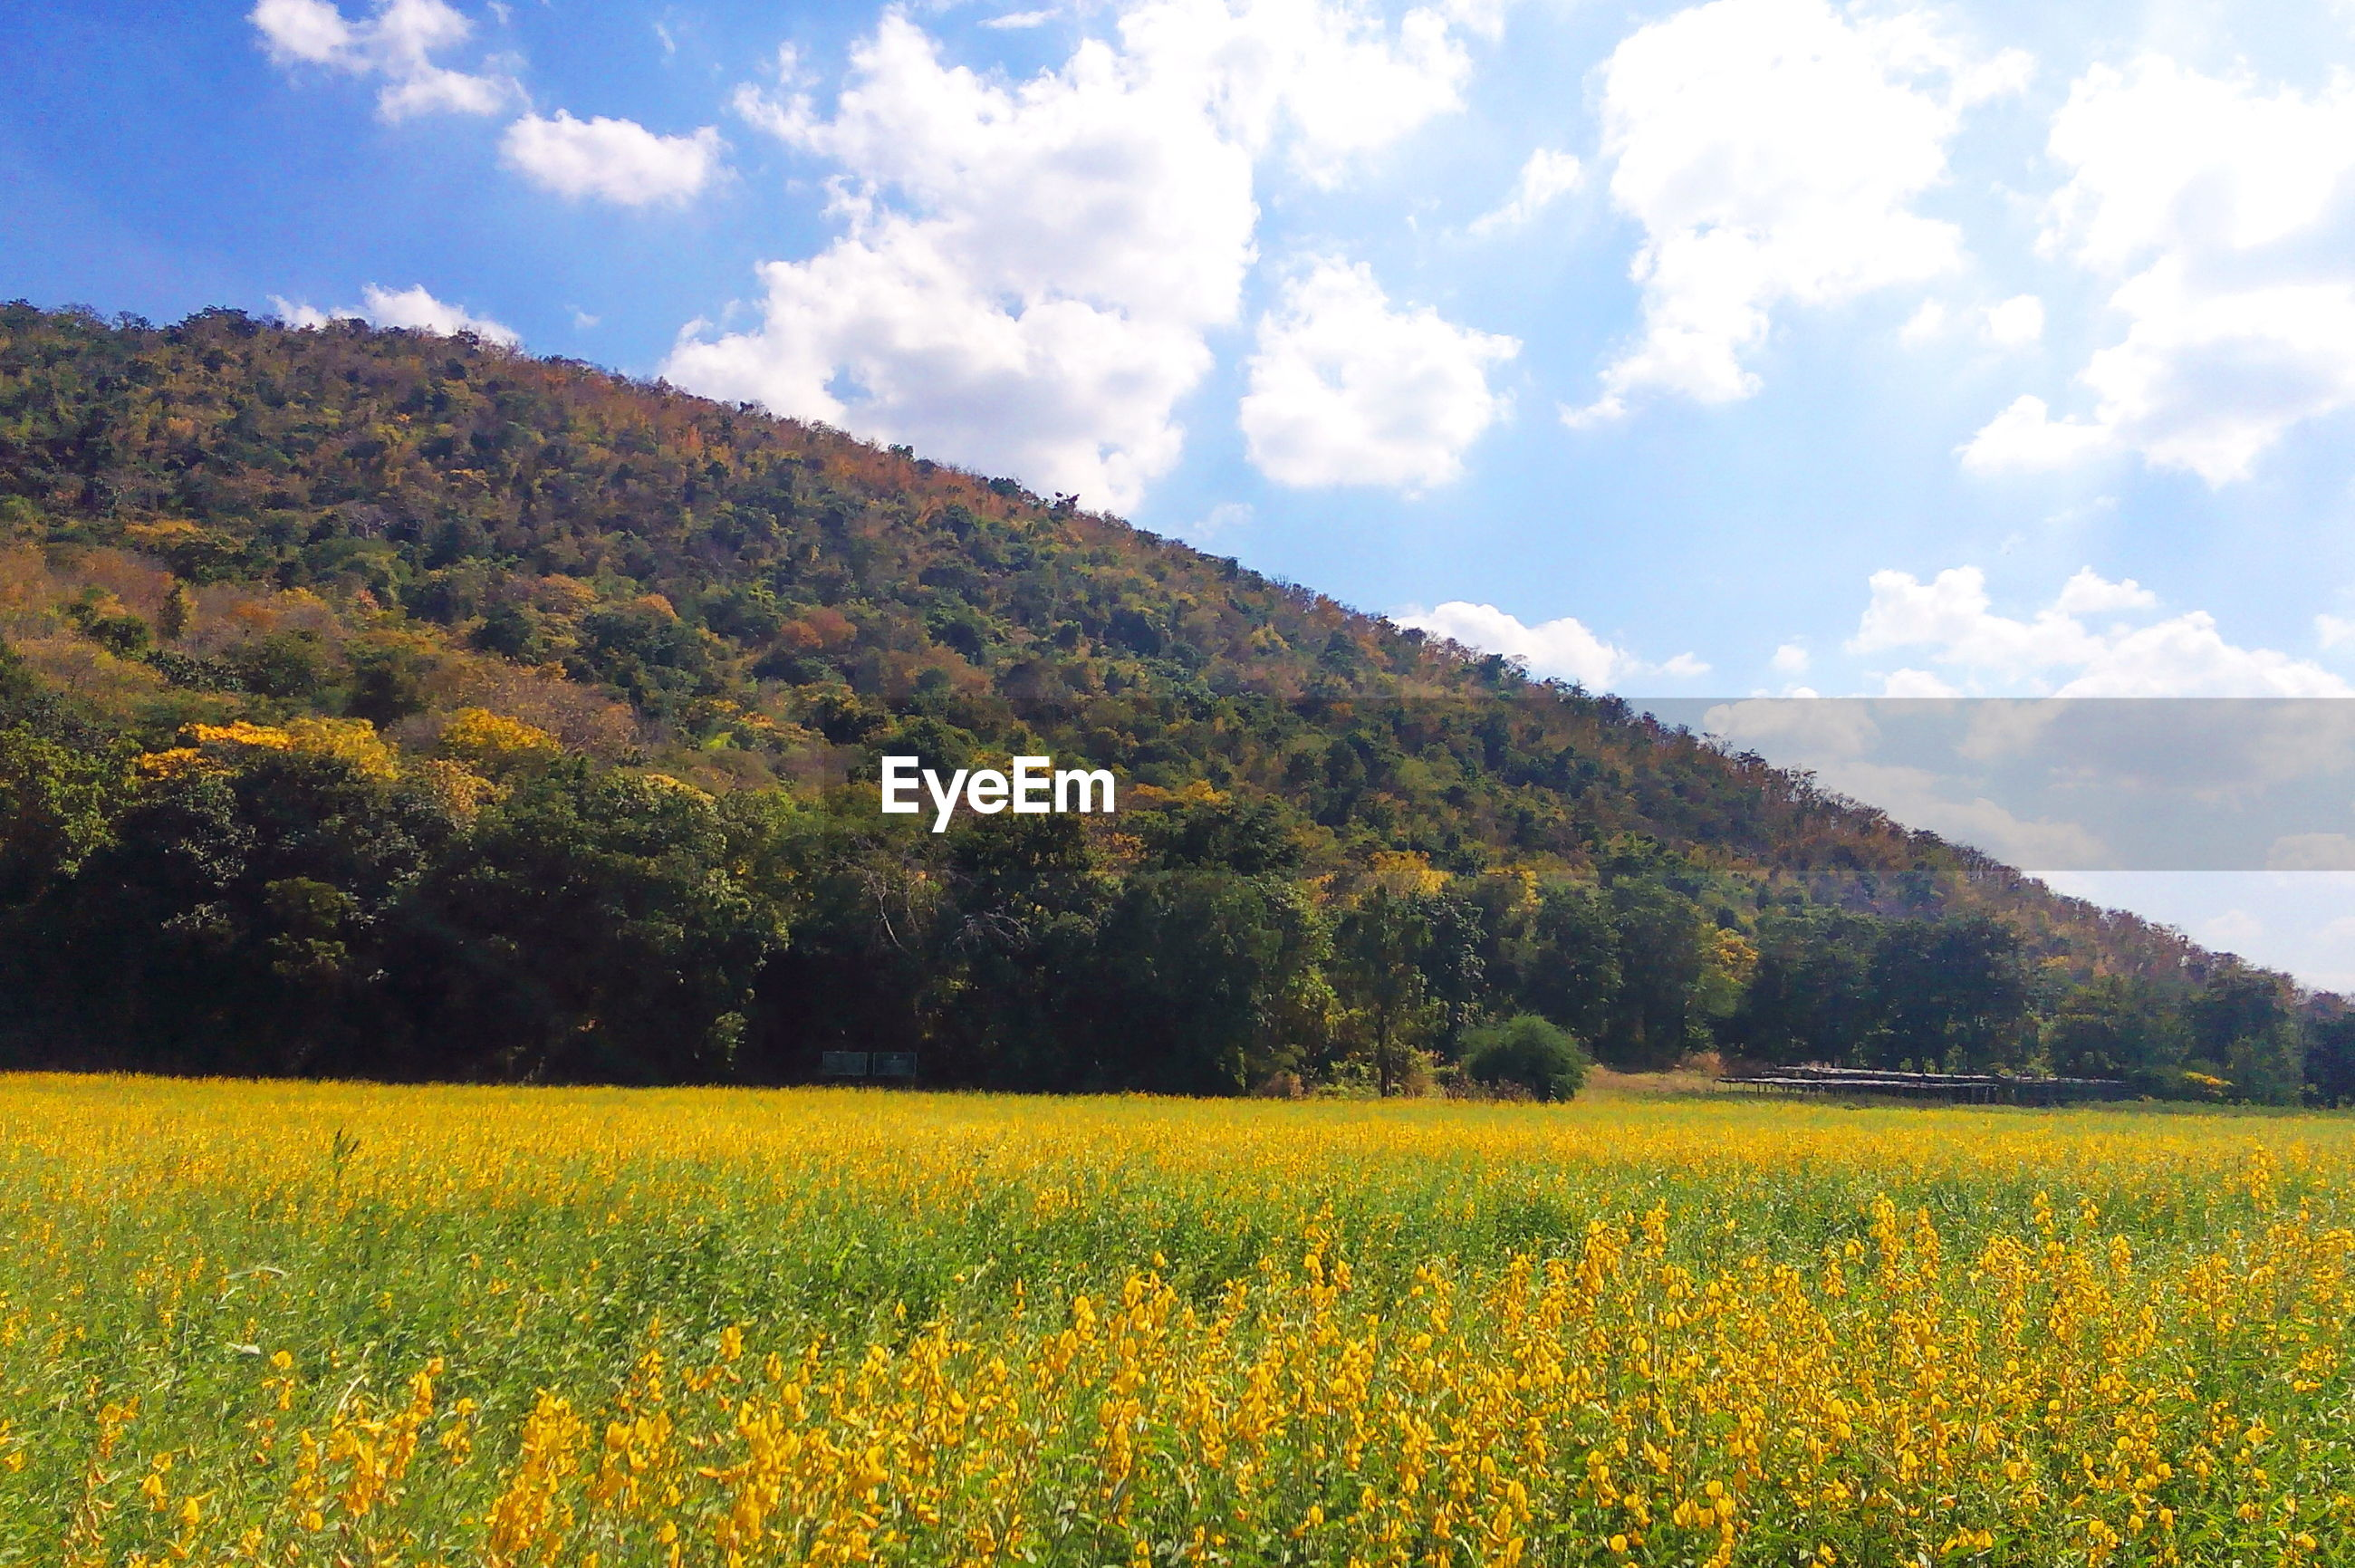 SCENIC VIEW OF YELLOW FLOWERING PLANTS ON FIELD AGAINST SKY